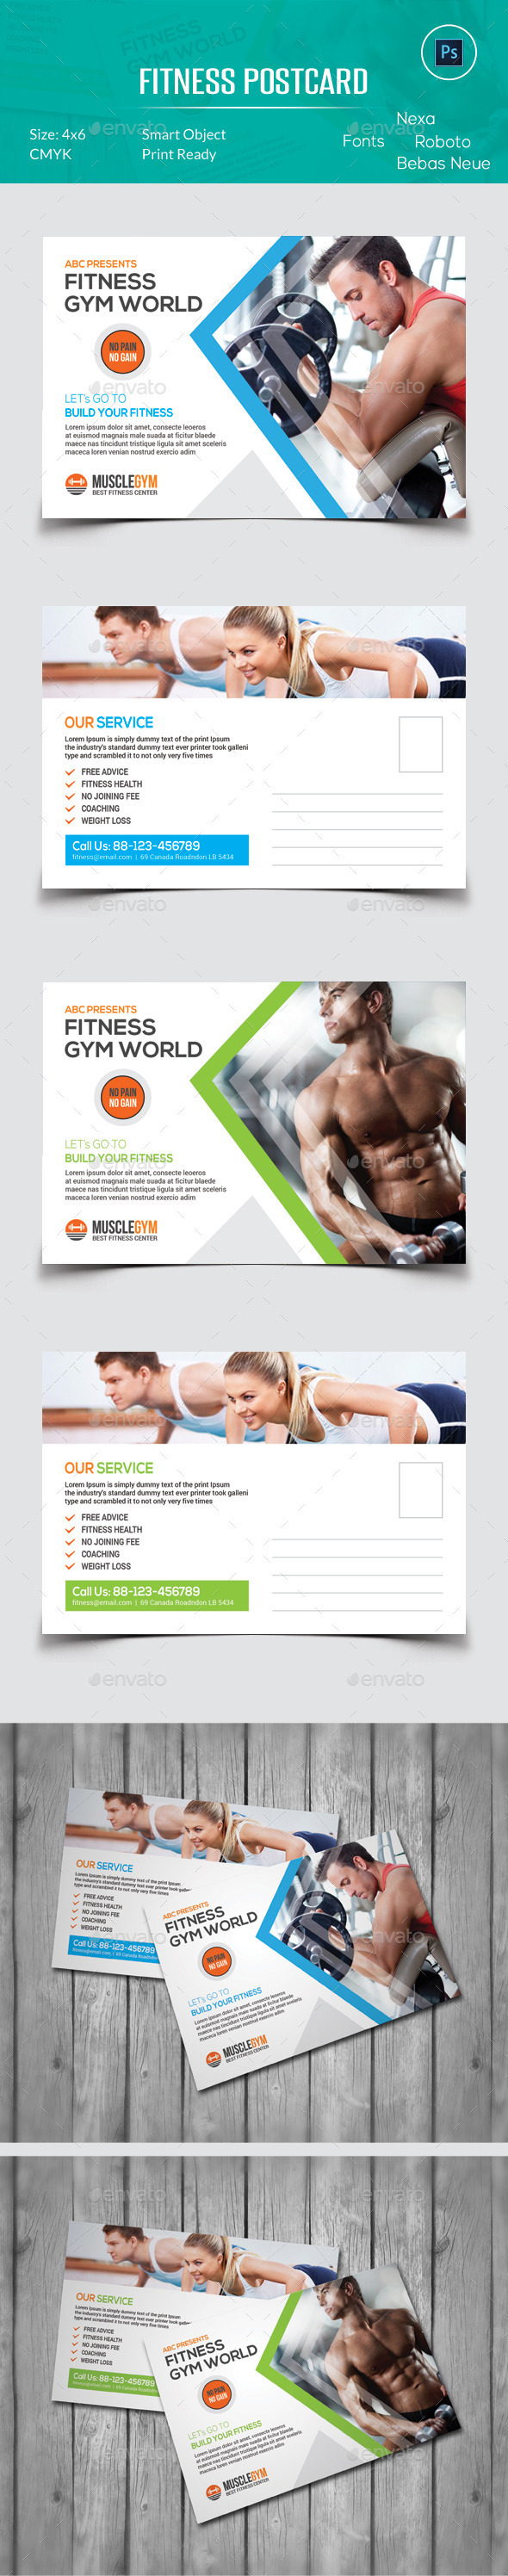 Fitness Postcard - Cards & Invites Print Templates